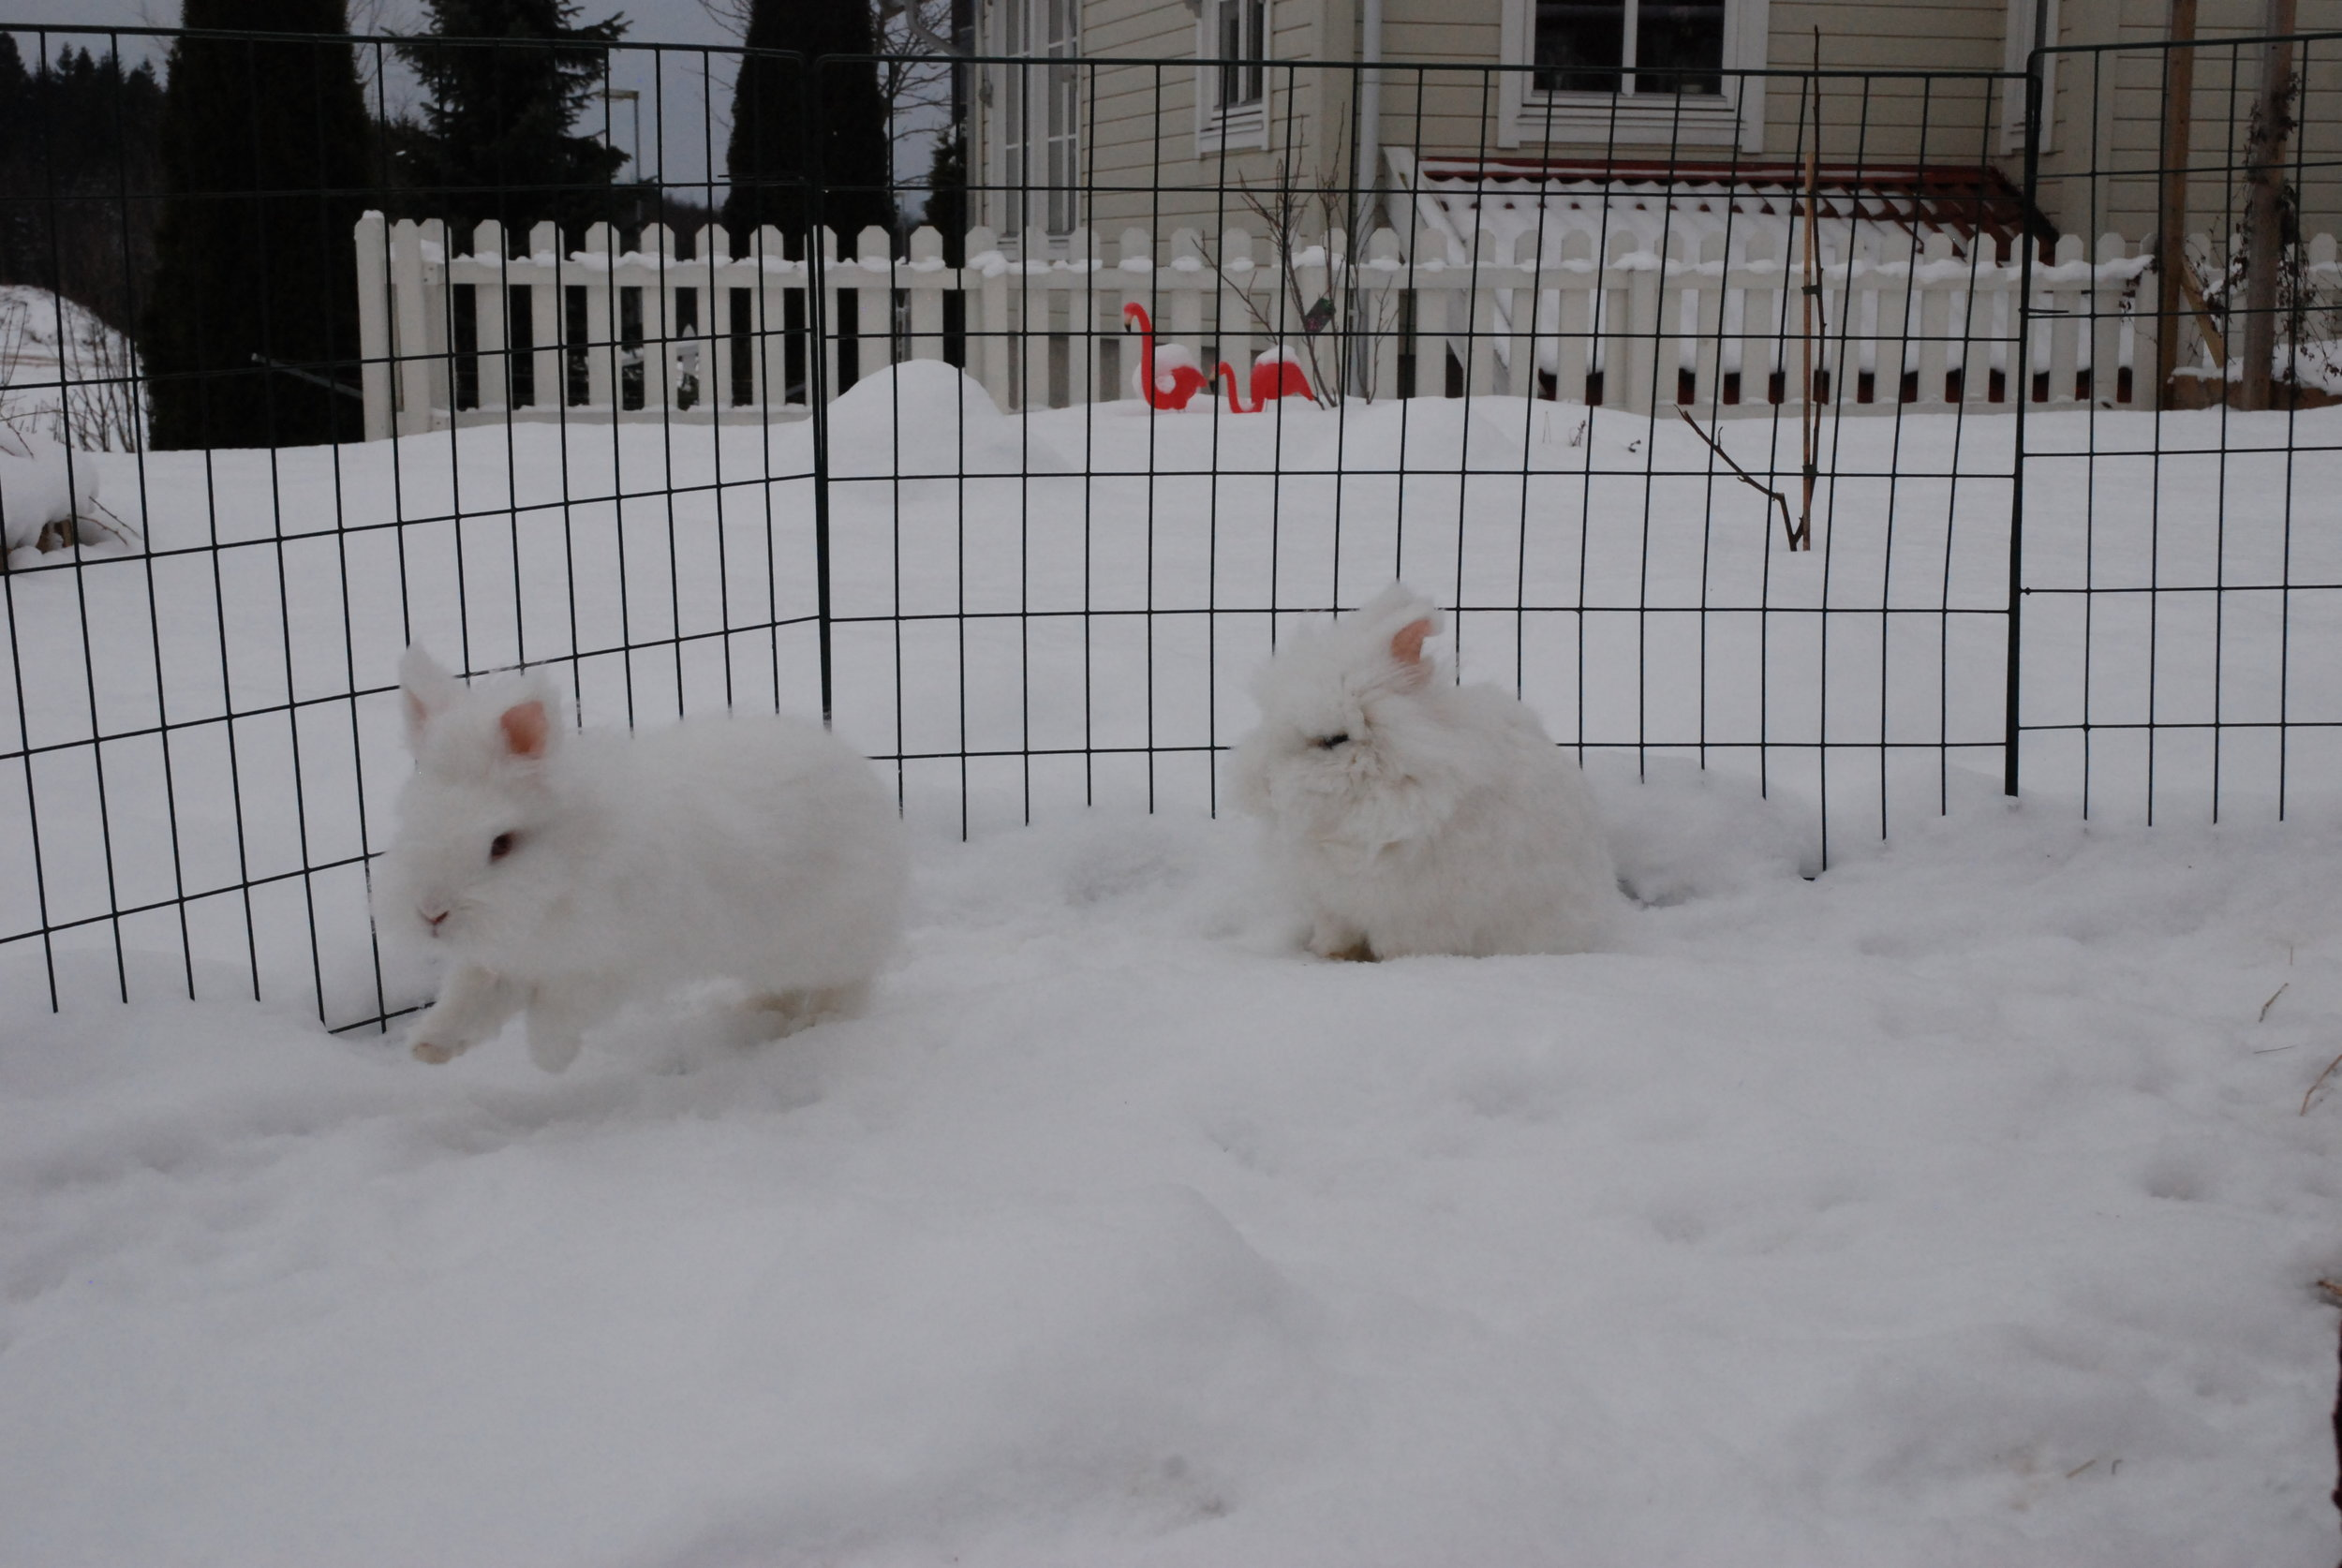 Where Does the Snow End and the Bunny Begin? 1